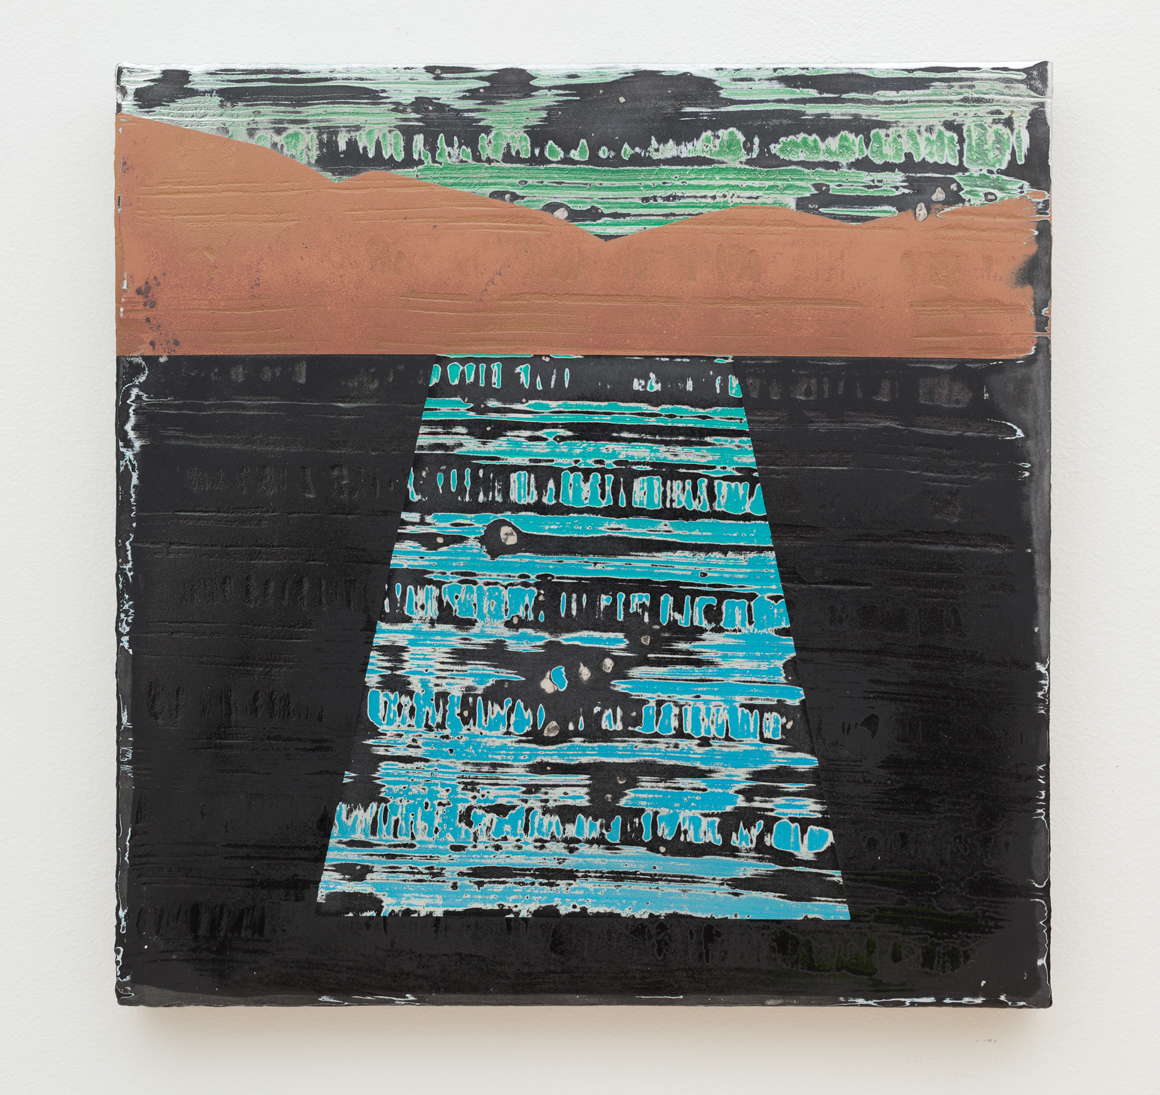 <p><em>Pool Containment (3)</em><span class='media'>Aqua resin, India ink, pigment, enamel, oil, acrylic, chrome on linen</span>16 x 16 in  (40.6 x 40.6 cm)<br>2015<br><a class='inquire' href='mailto:info@gildargallery.com?subject=Artwork Inquiry JCOC0018&body=I am interested in finding out more about Pool Containment (3) by Joey Cocciardi'>Inquire</a></p>